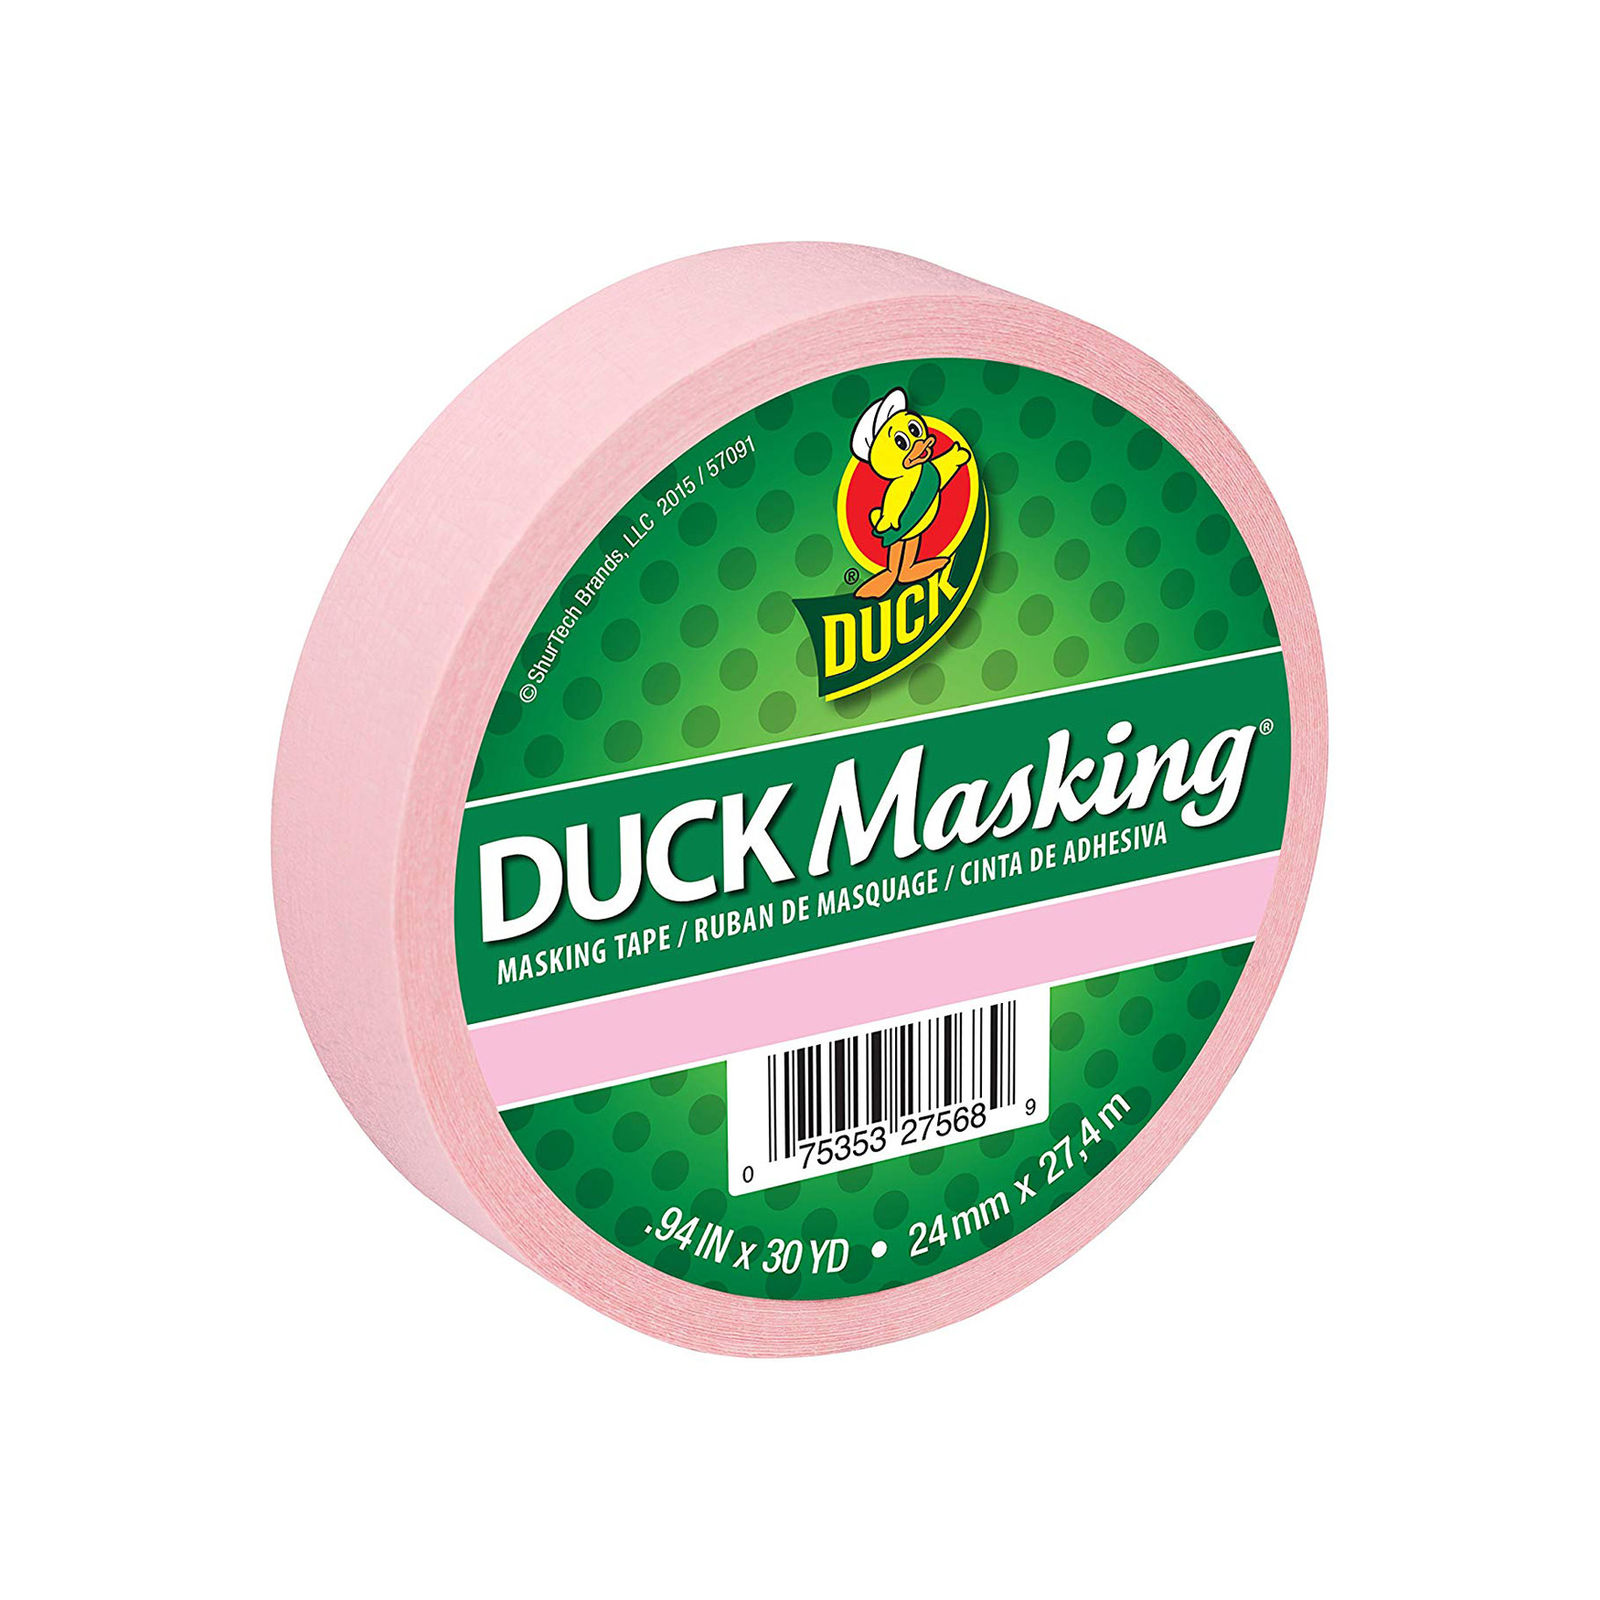 Duck Masking 240879 Pink Color Masking Tape .94-Inch x 30 Yards